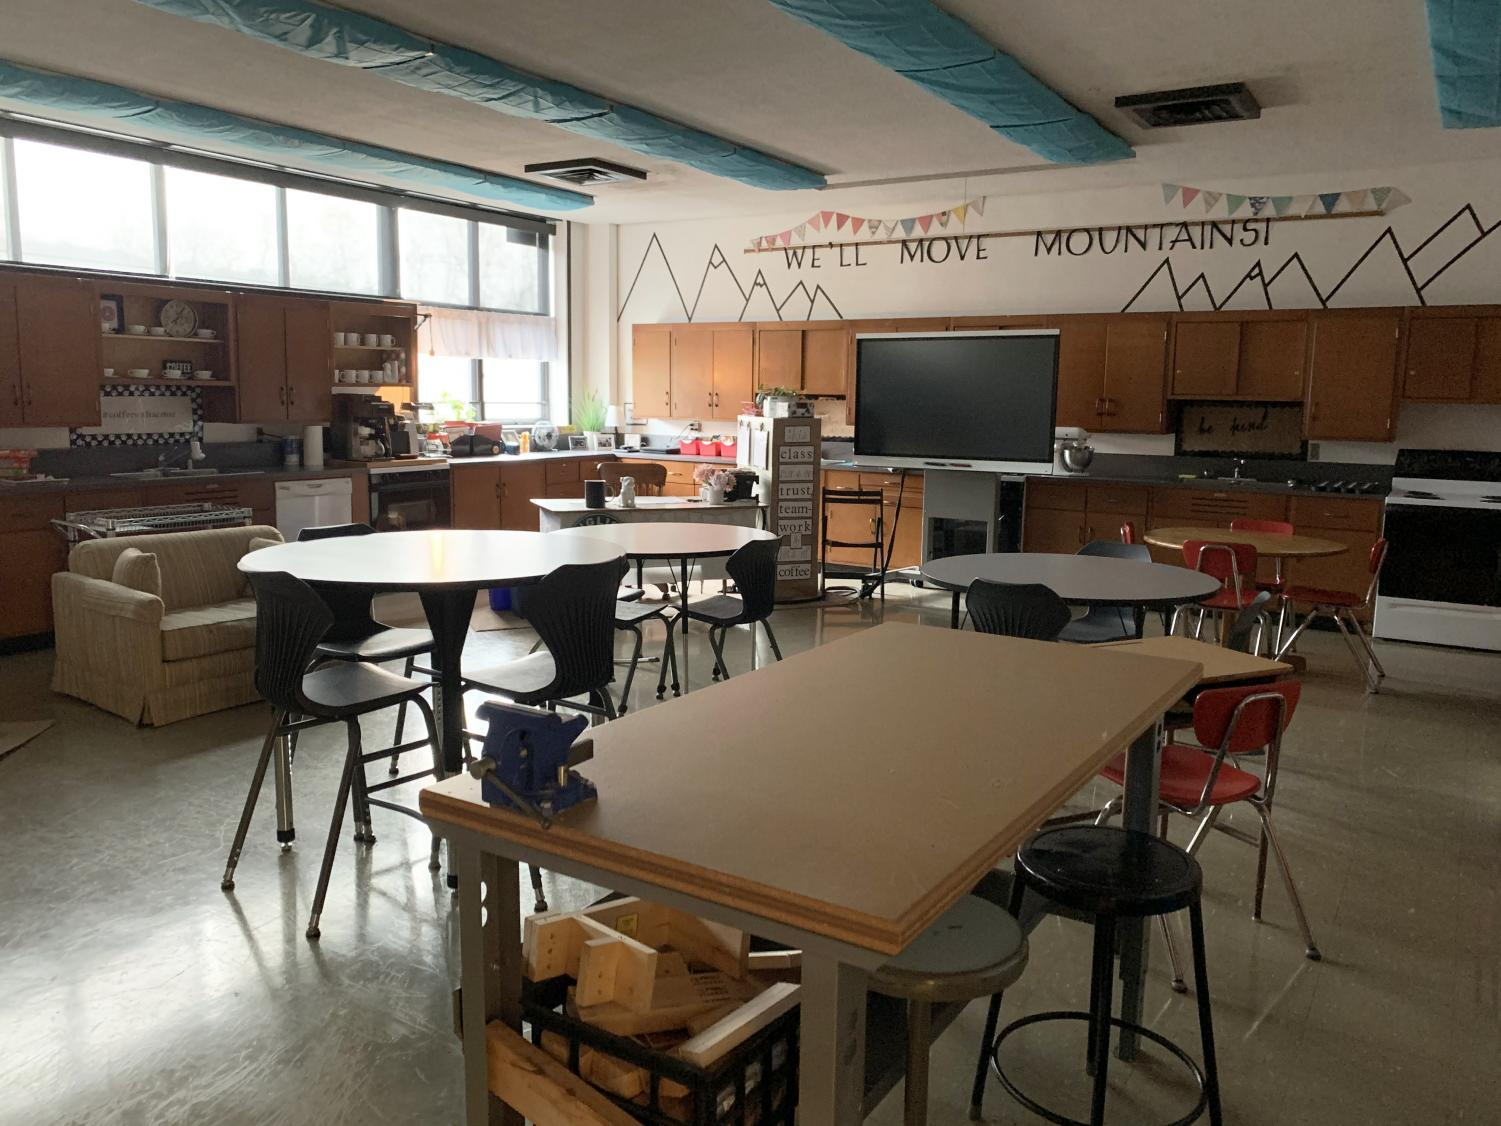 Room 116, the Life Skills classroom, is furnished with couches, high chairs and lighting covers to enhance the classroom experience for the students.